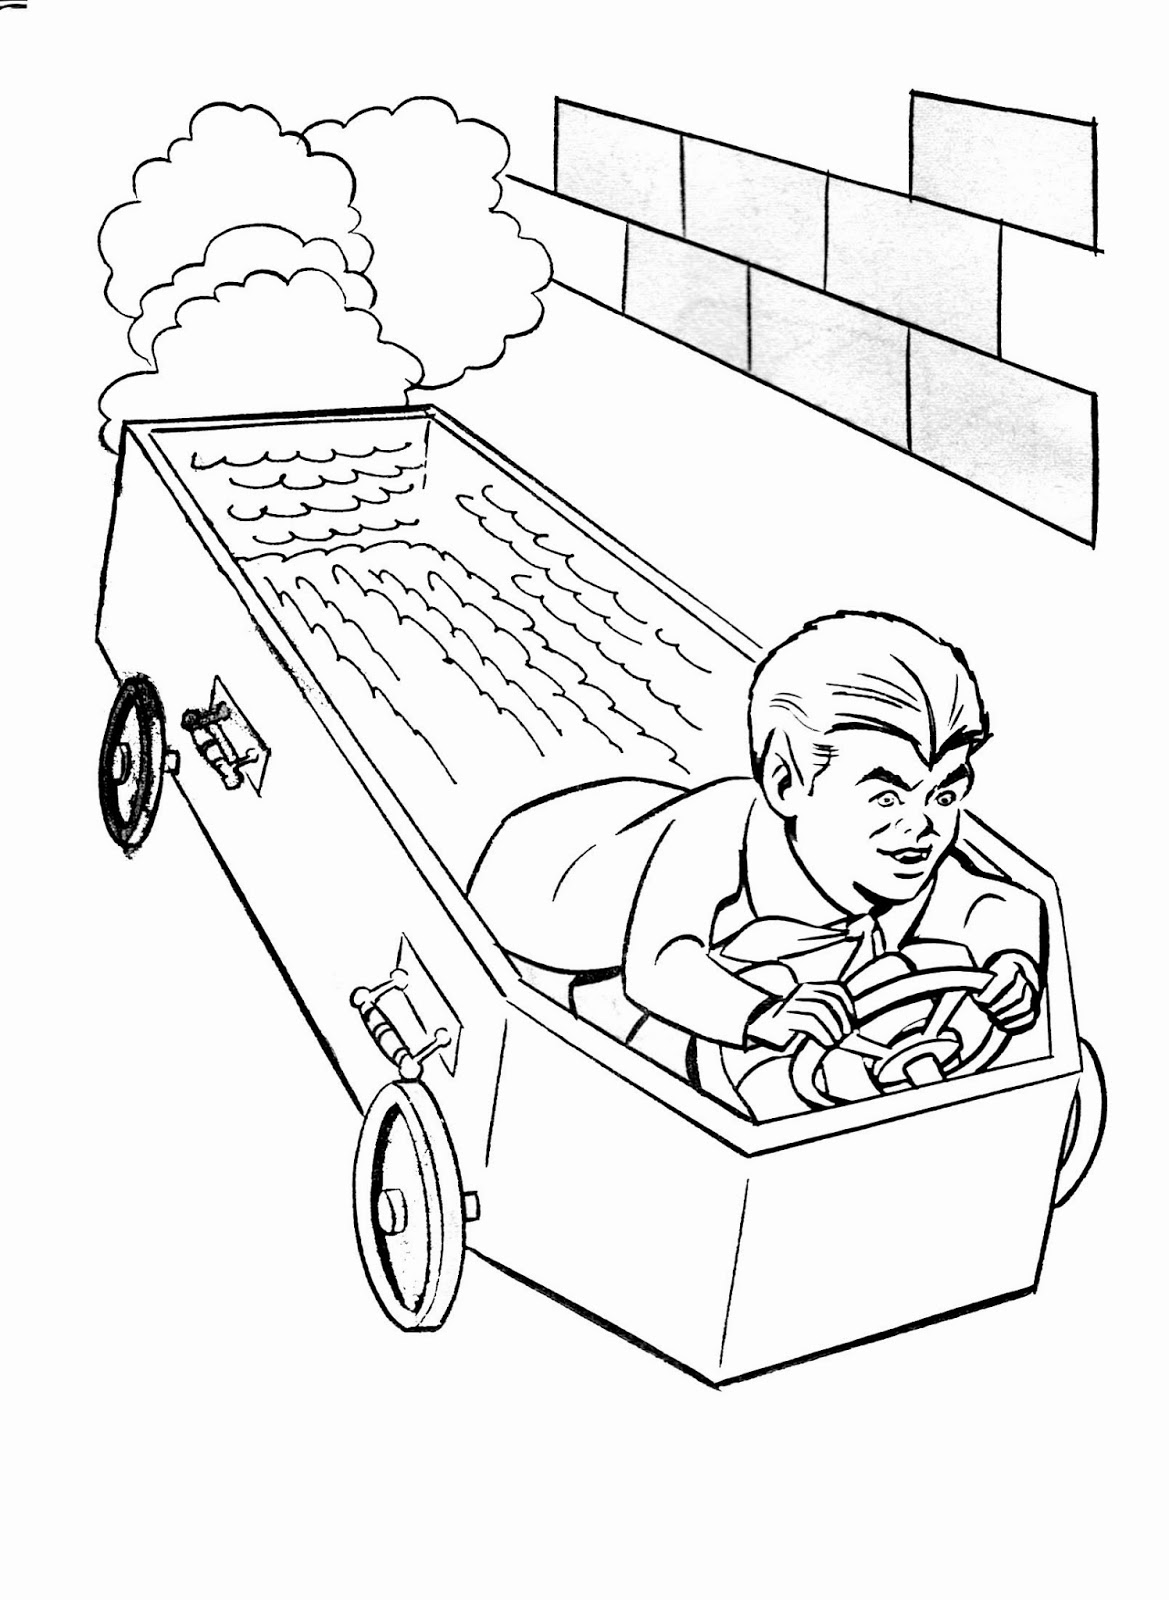 o ween coloring pages - photo #37